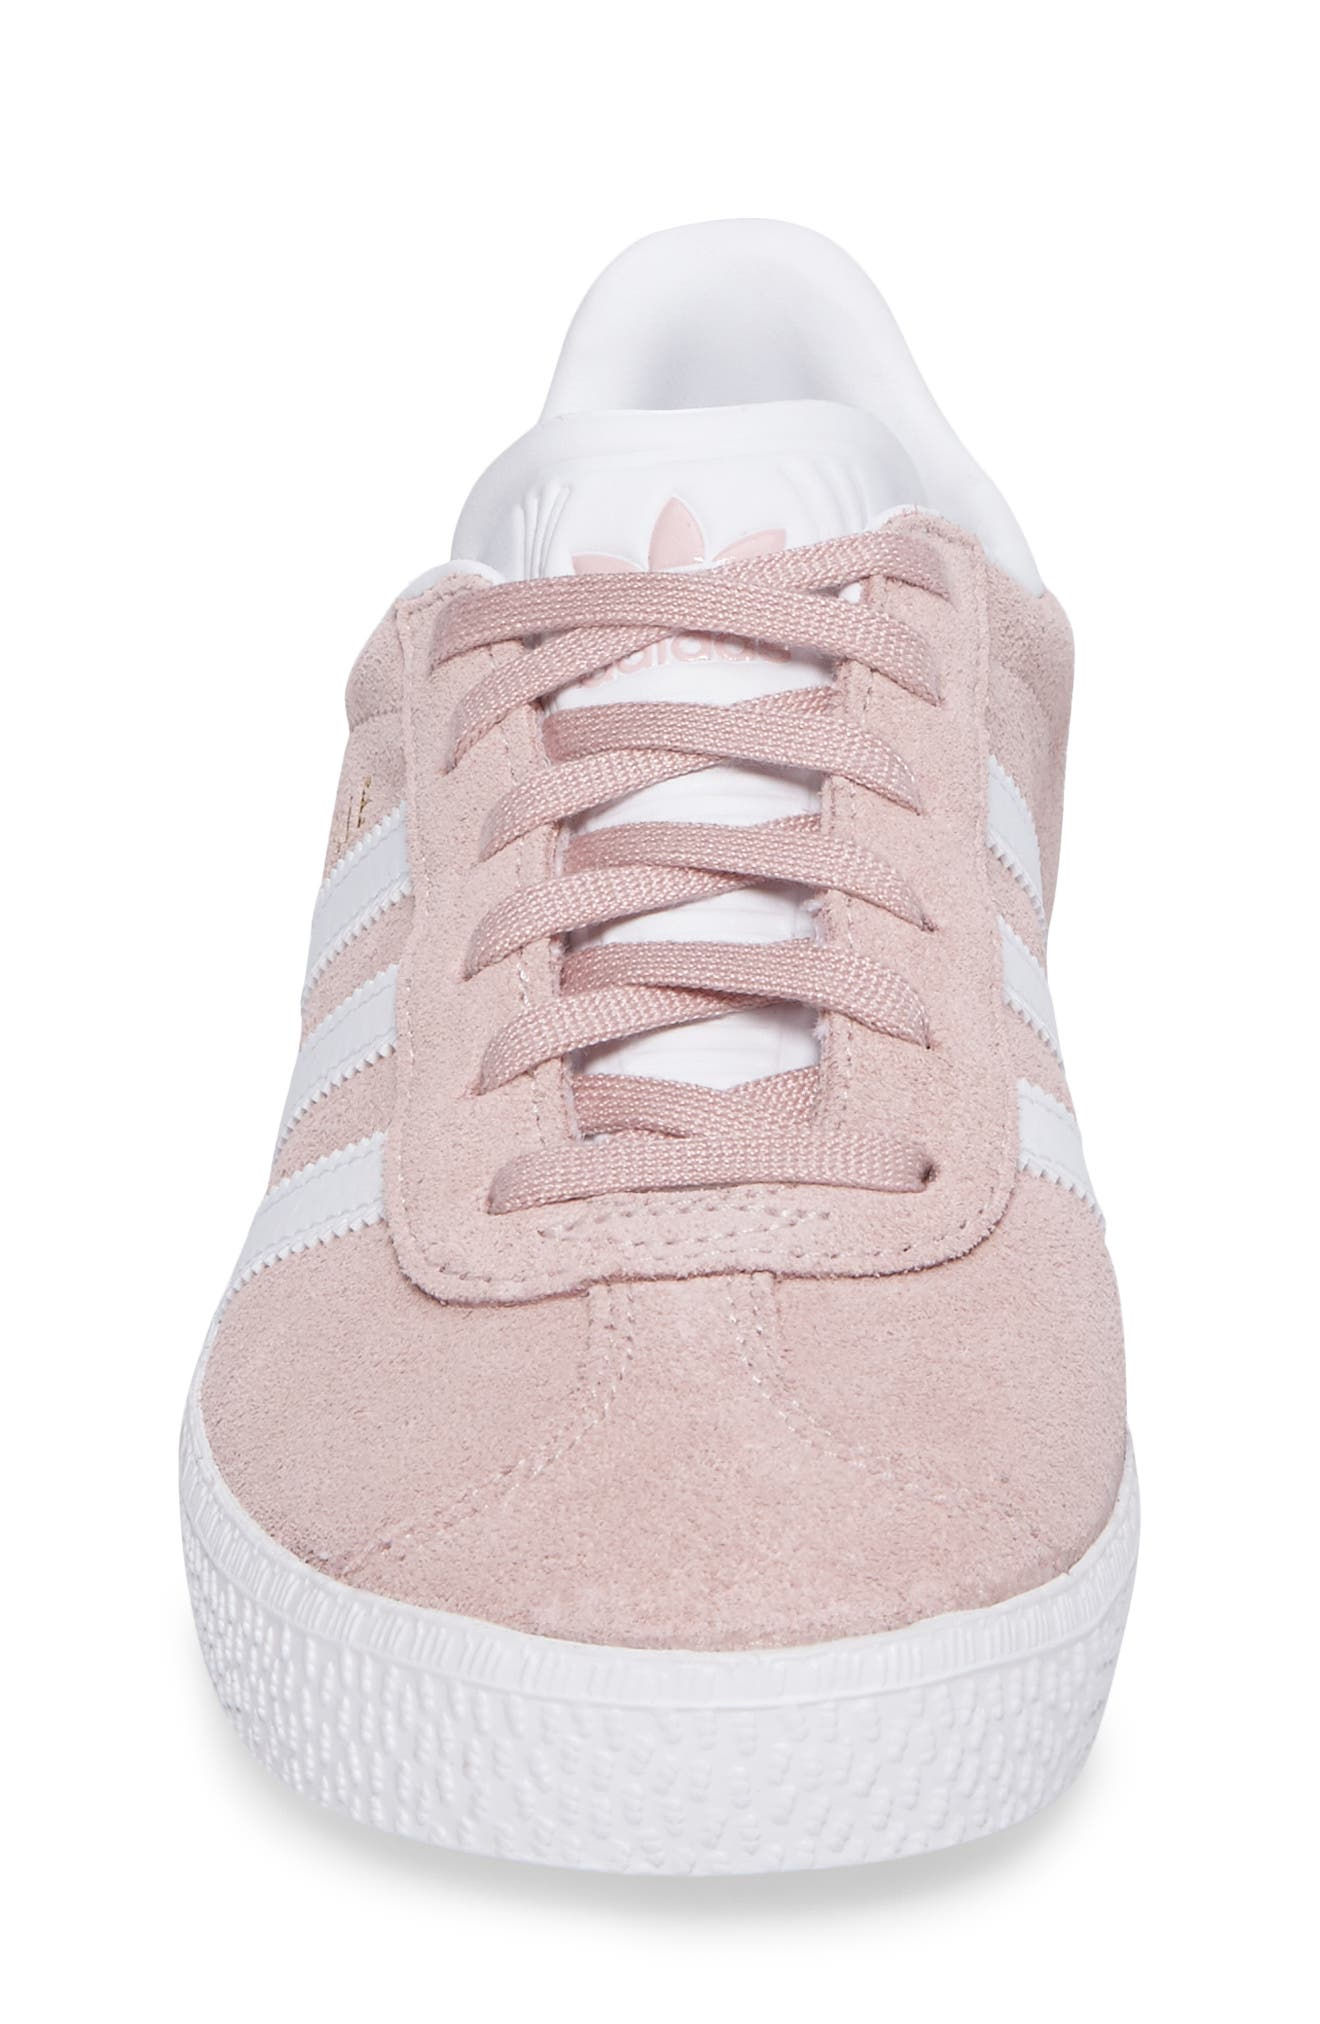 Gazelle Sneaker,                             Alternate thumbnail 4, color,                             Icy Pink/ White/ Gold